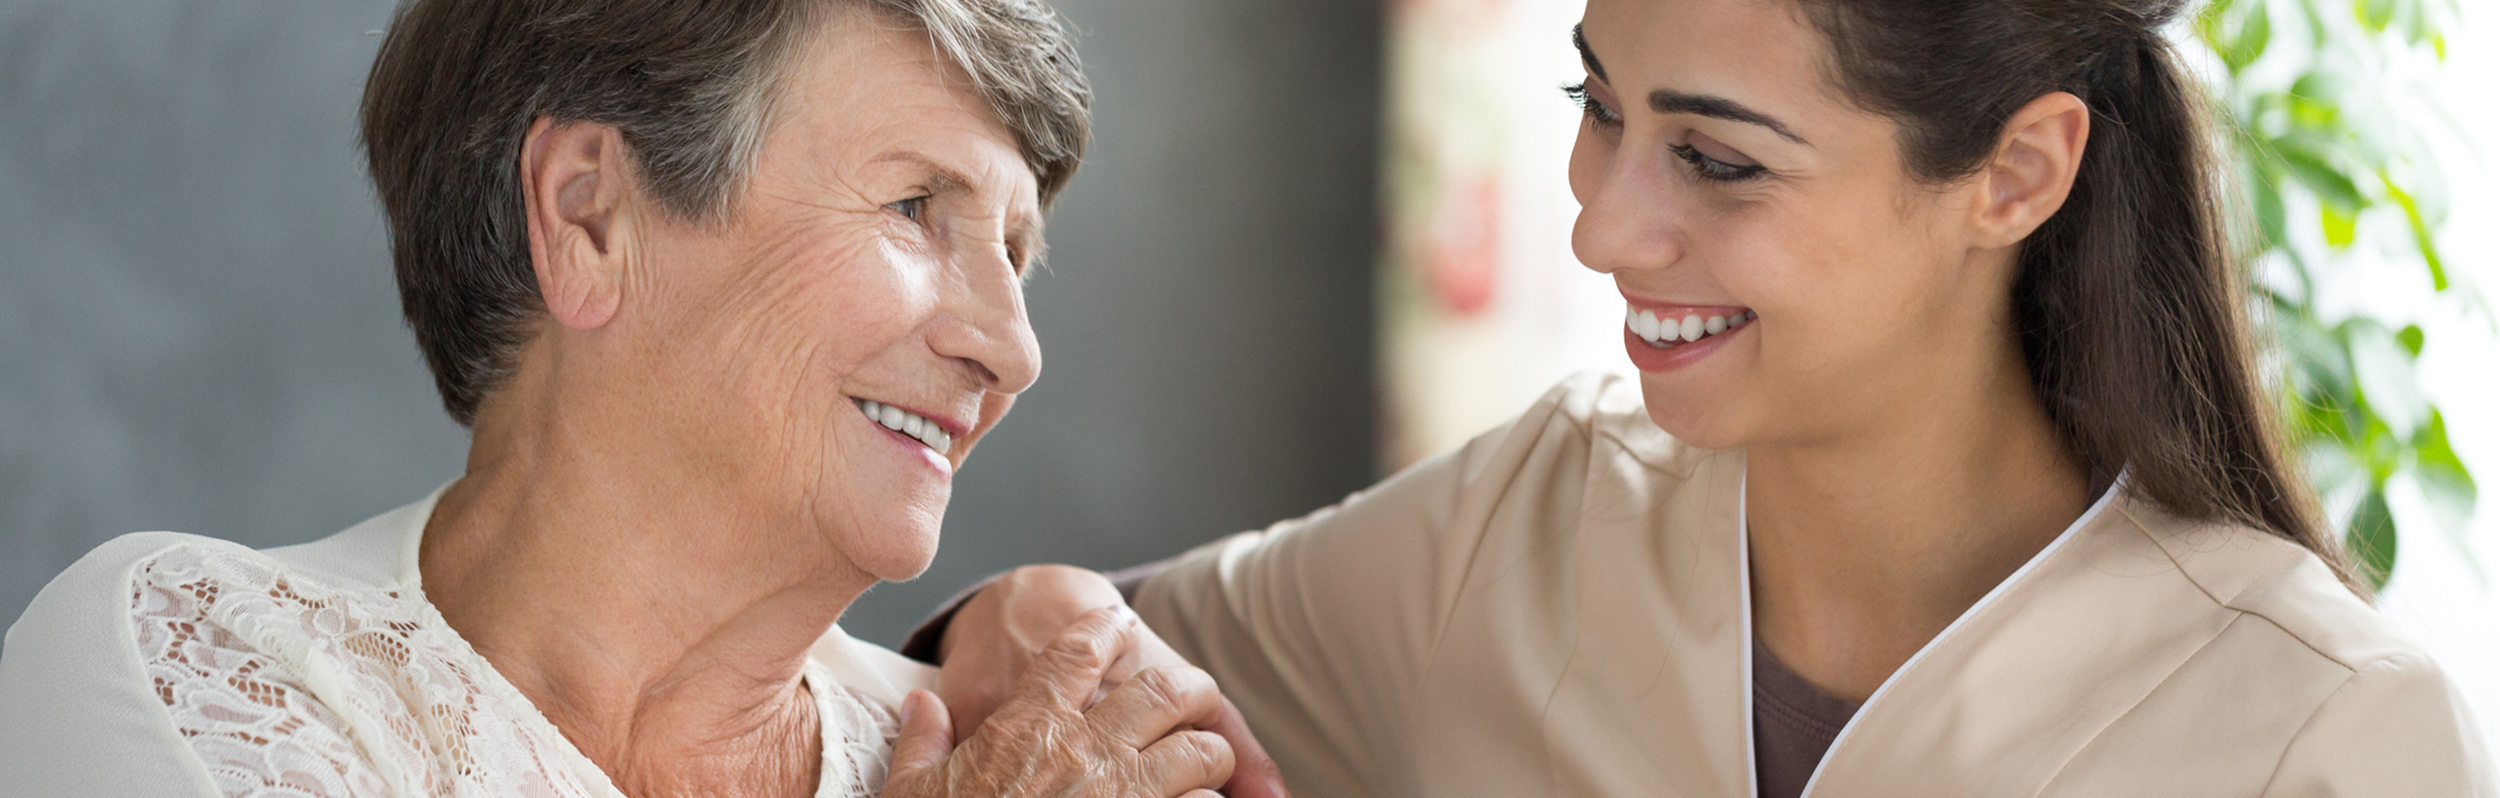 Nurse interacts with an older patient.